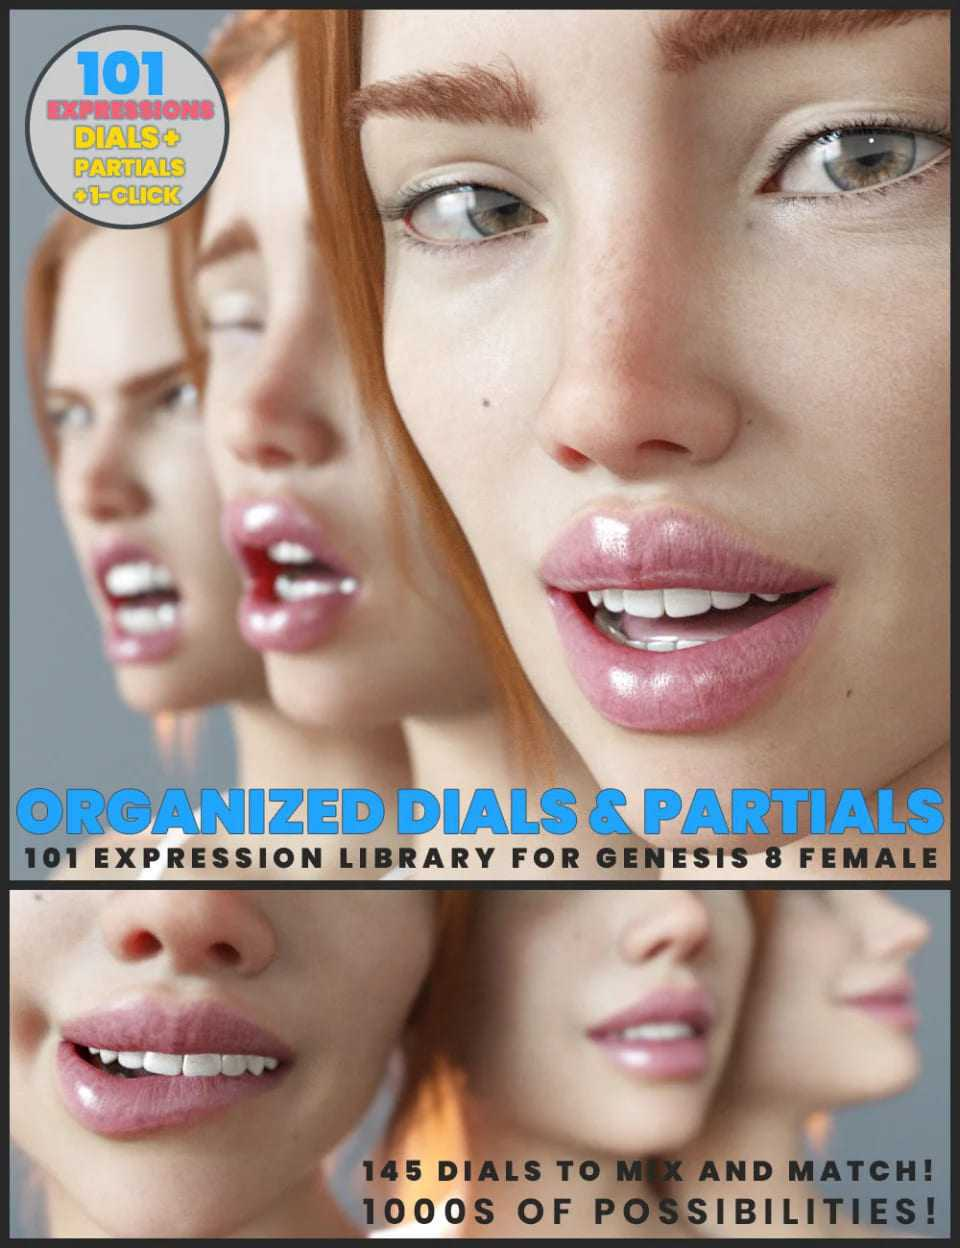 101 Expression Library with Dials for the Genesis 8 Female